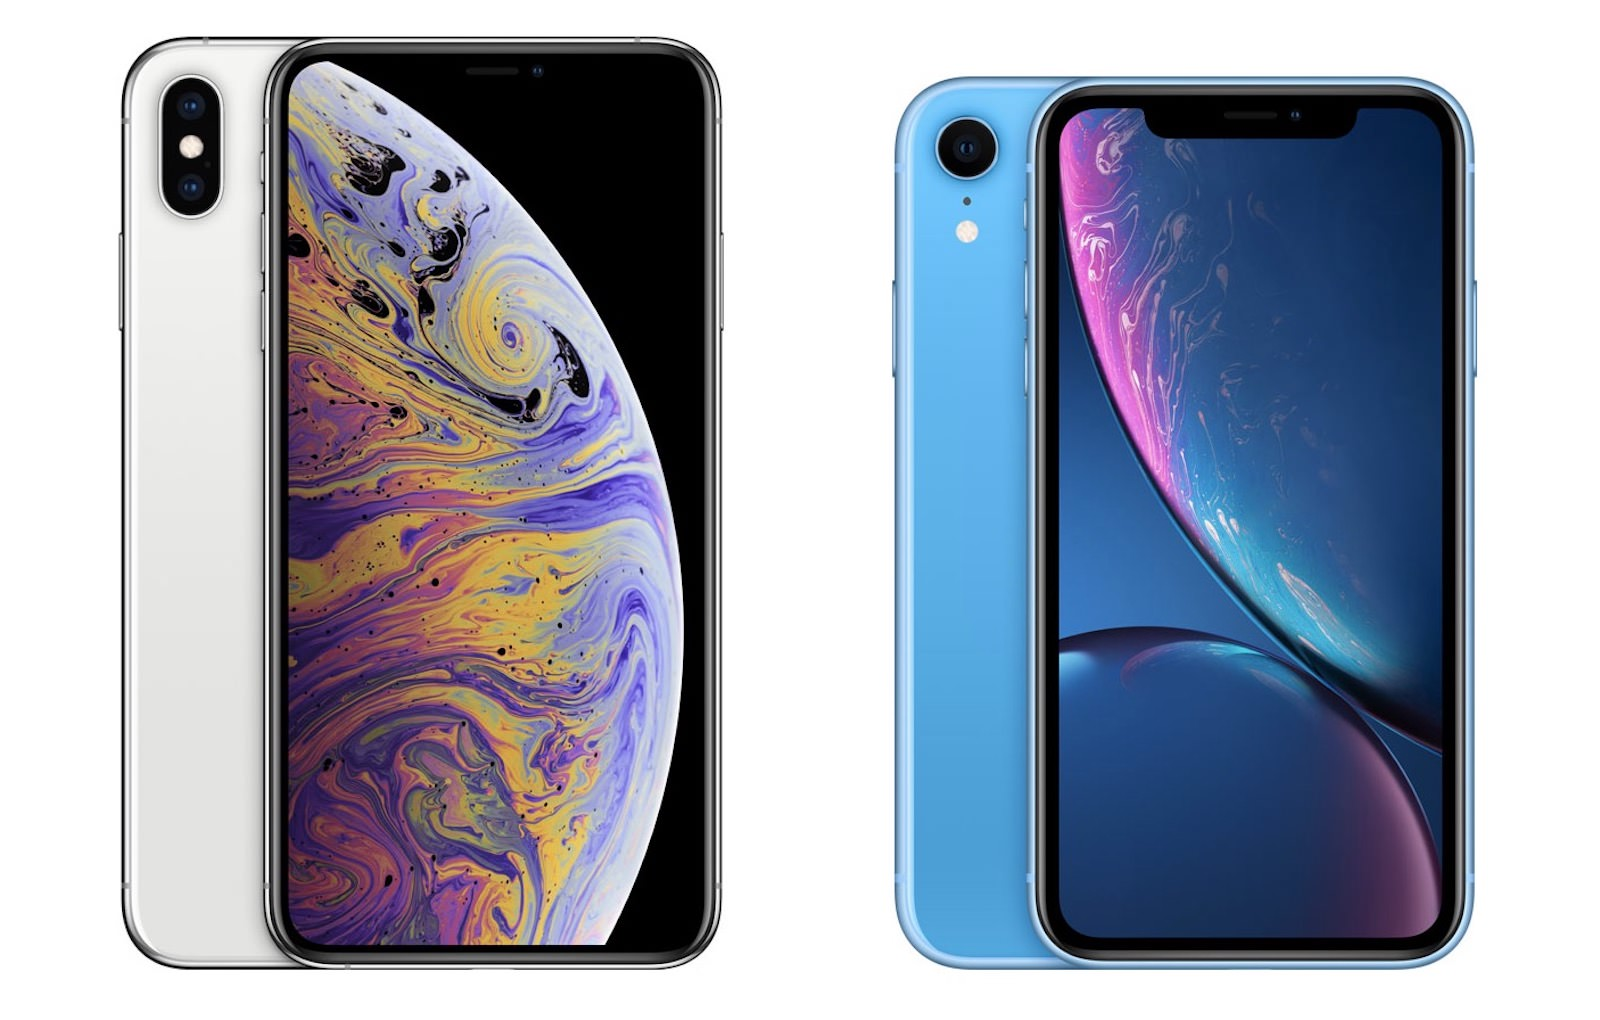 Iphone xs max xr comparison